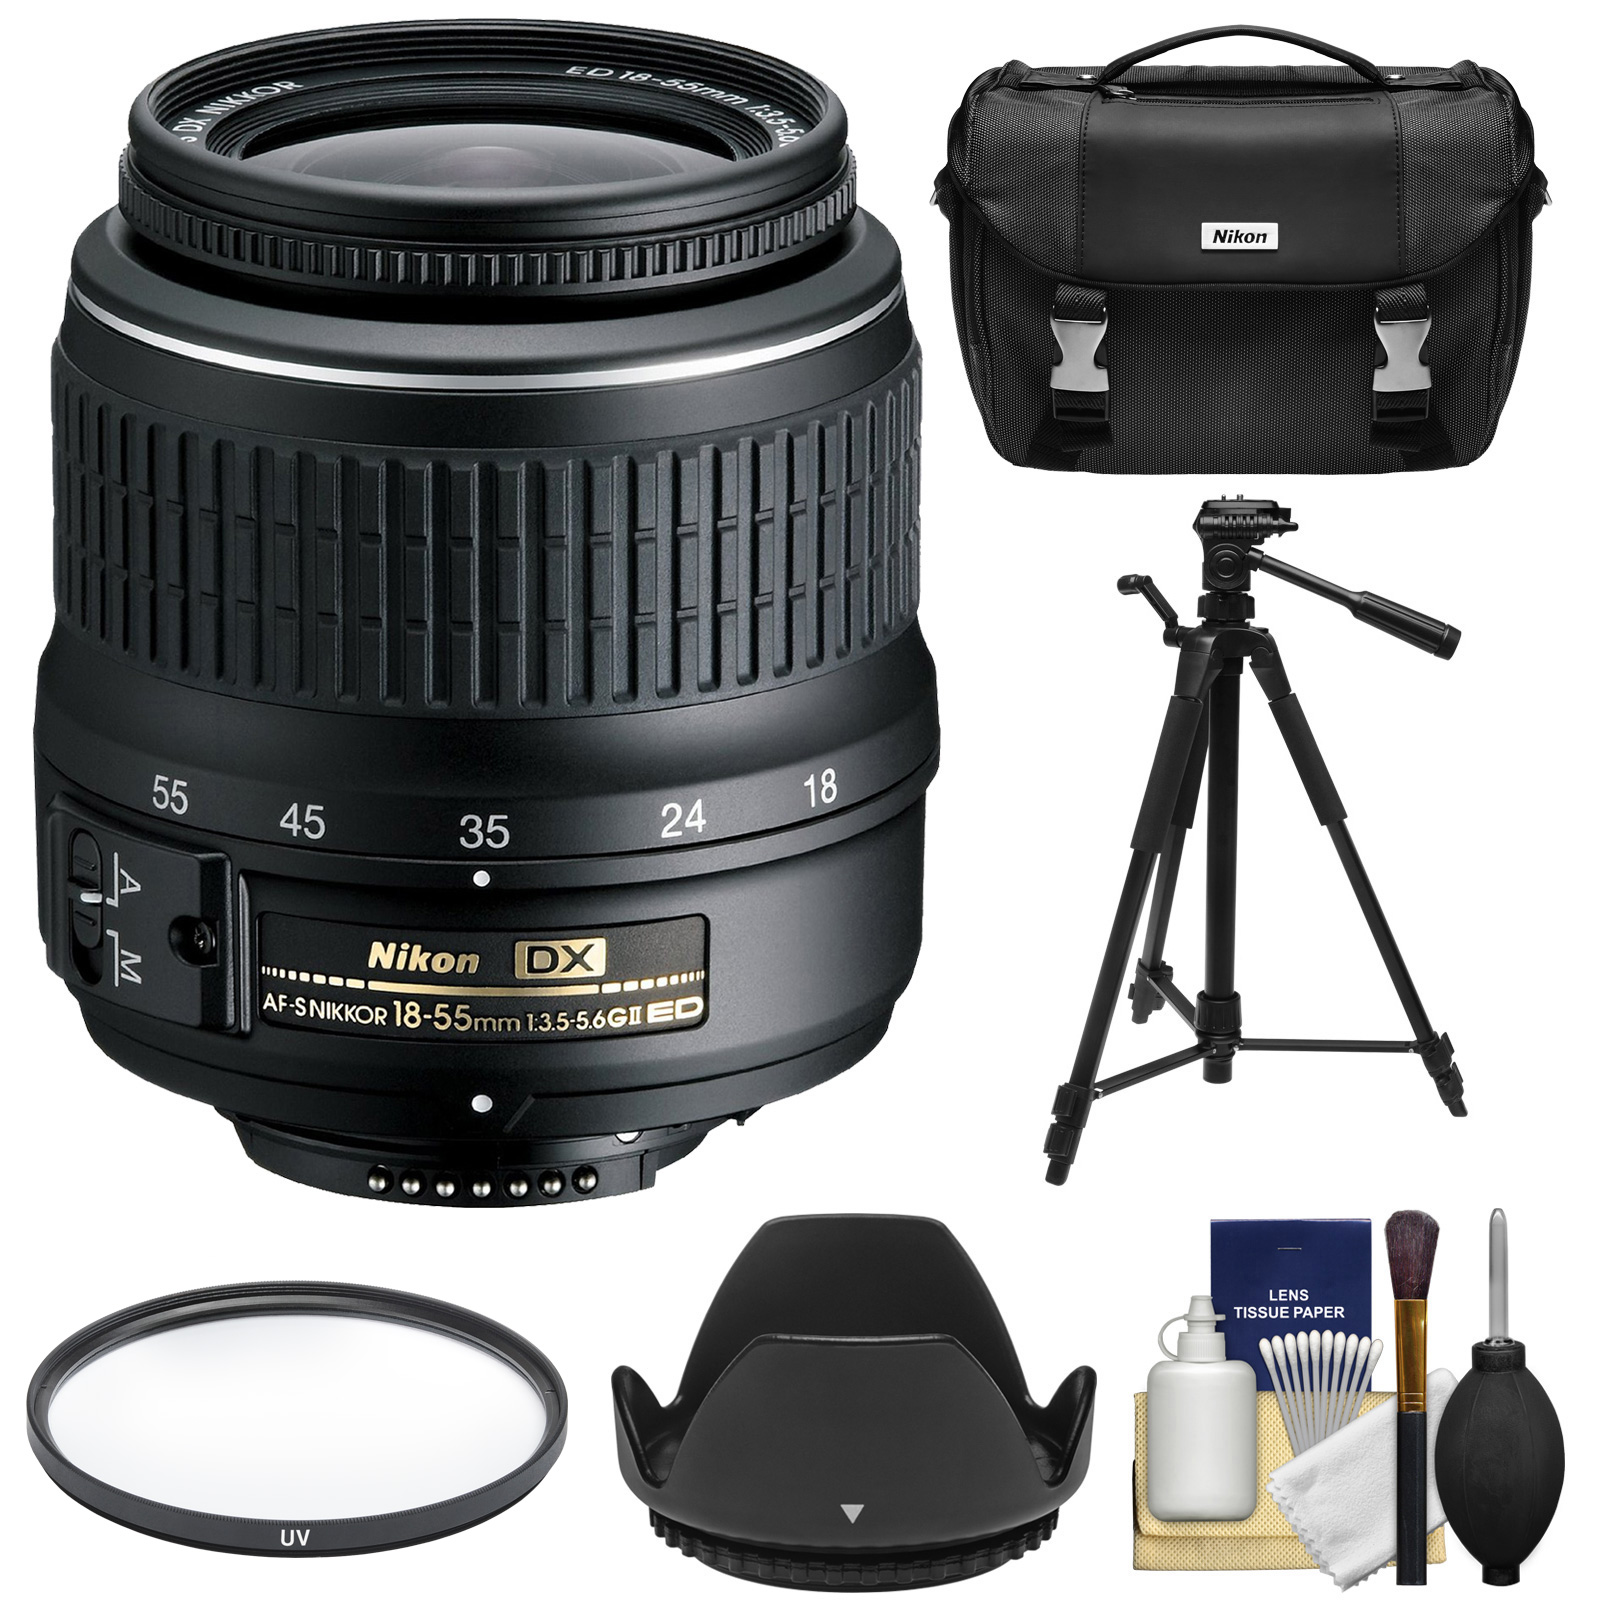 Nikon 18-55mm f/3.5-5.6G II DX AF-S ED Zoom-Nikkor Lens with Filter + Hood + Case + Tripod Kit for D3200, D3300, D5300, D5500, D7100, D7200 Cameras